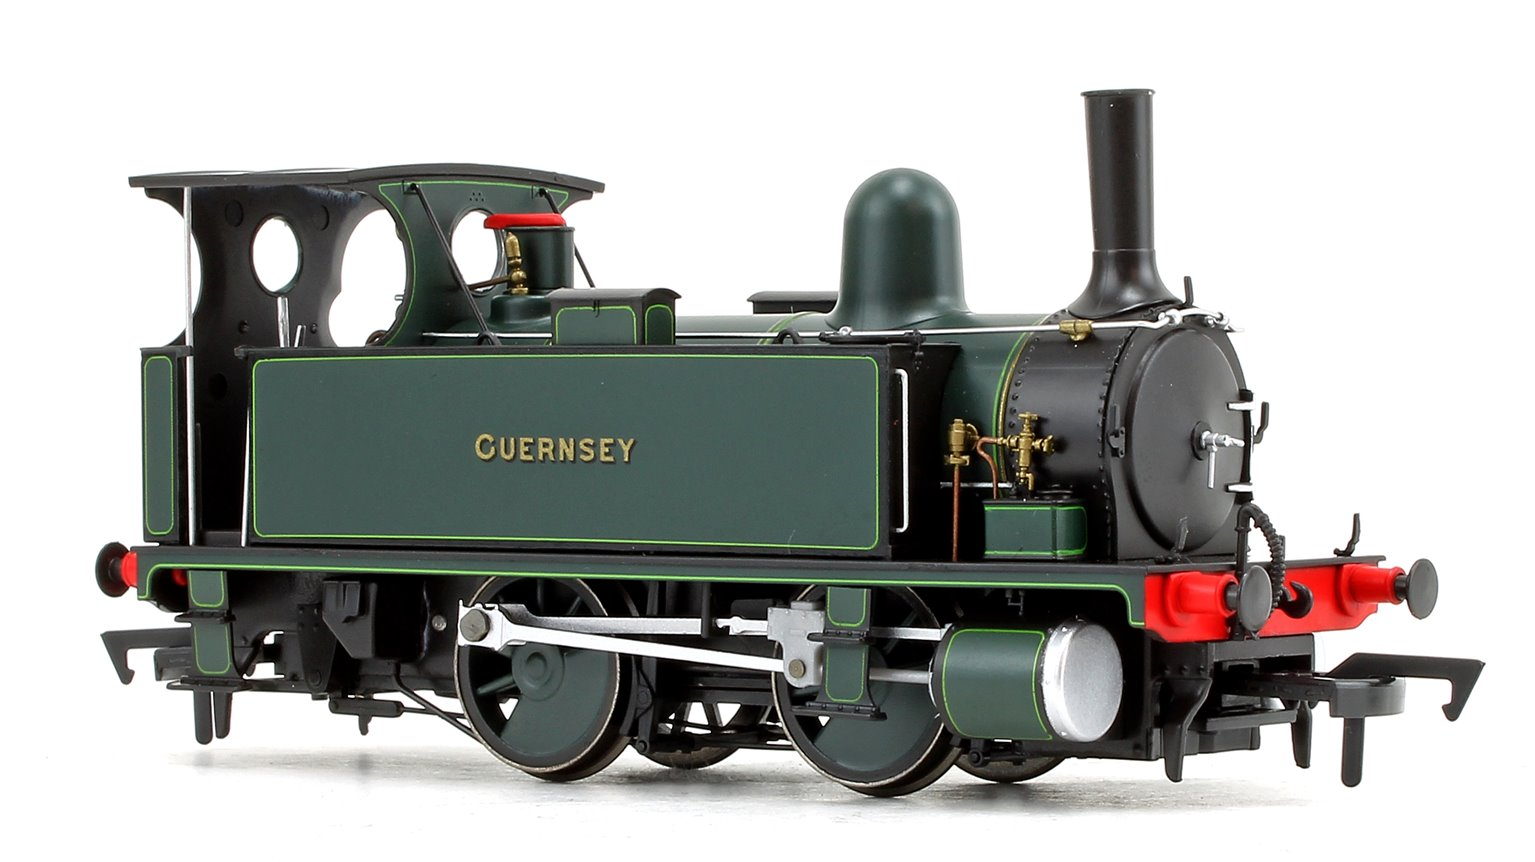 LSWR Class B4 'Guernsey' Dark Green Lined Livery 0-4-0 Tank Locomotive